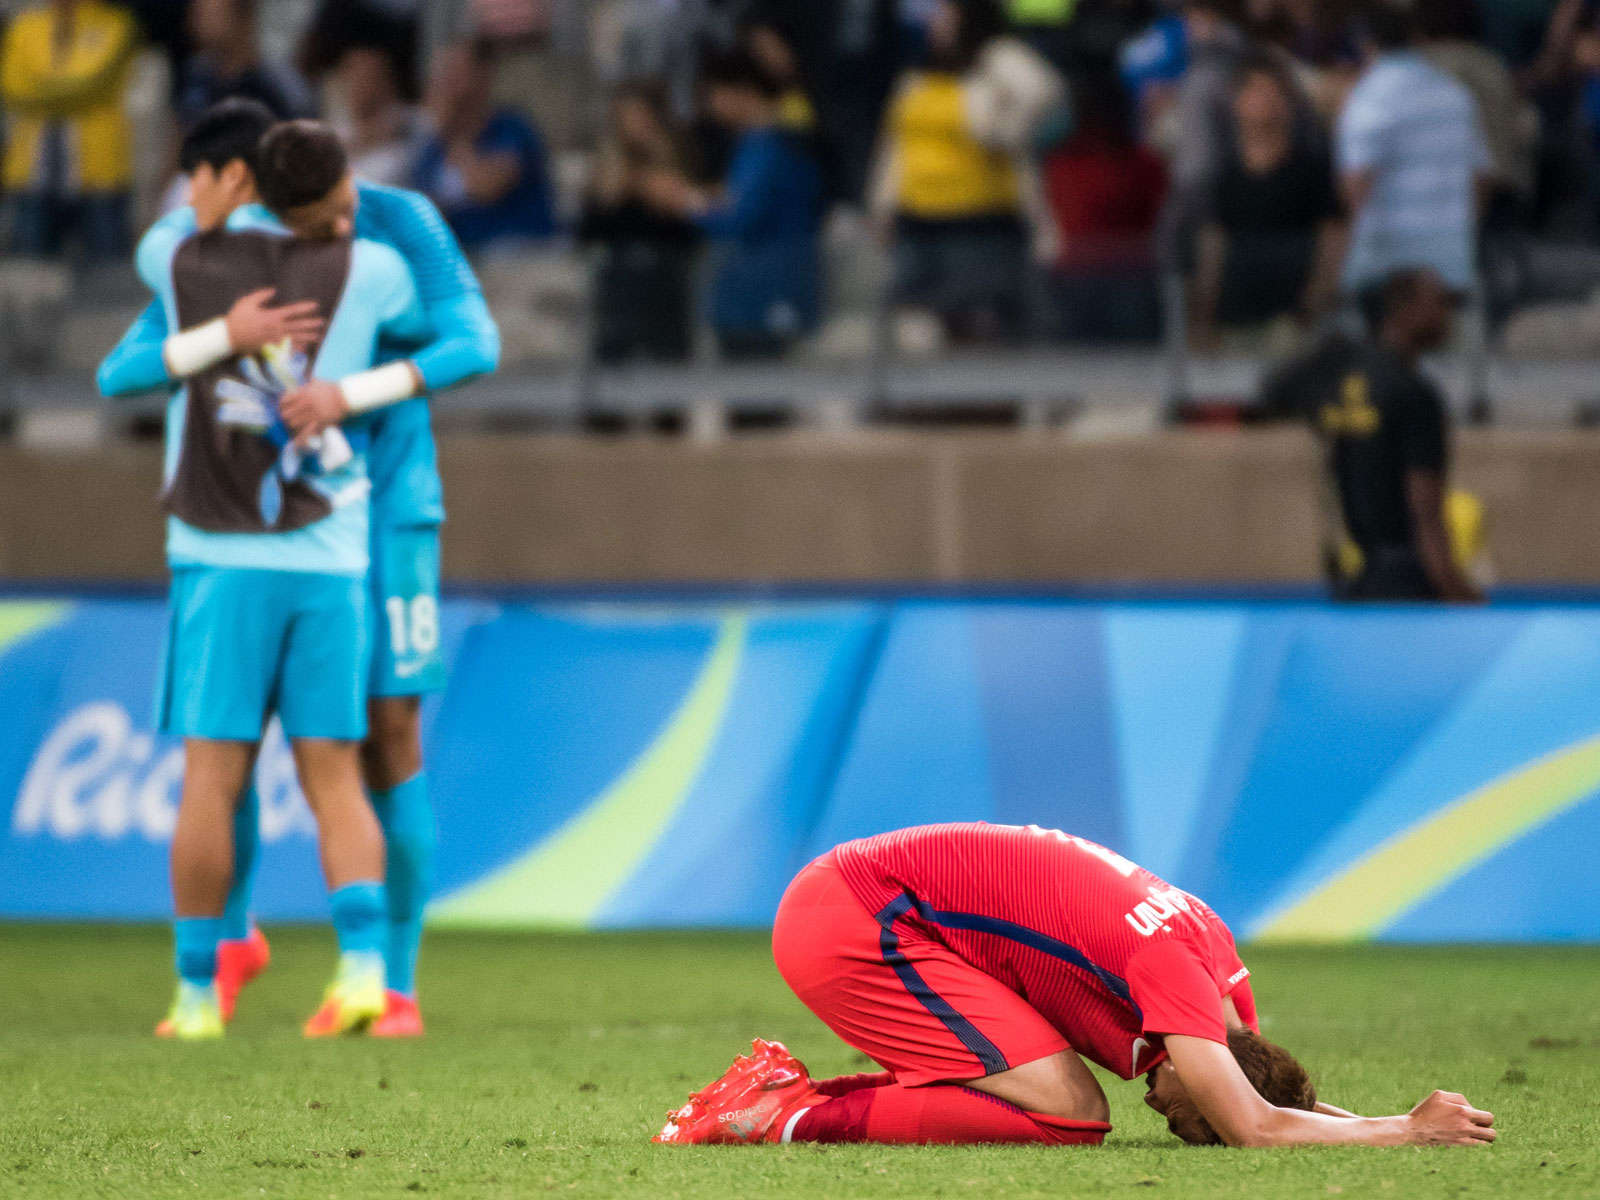 Son Heung-min and South Korea lose to Honduras in the 2016 Olympics